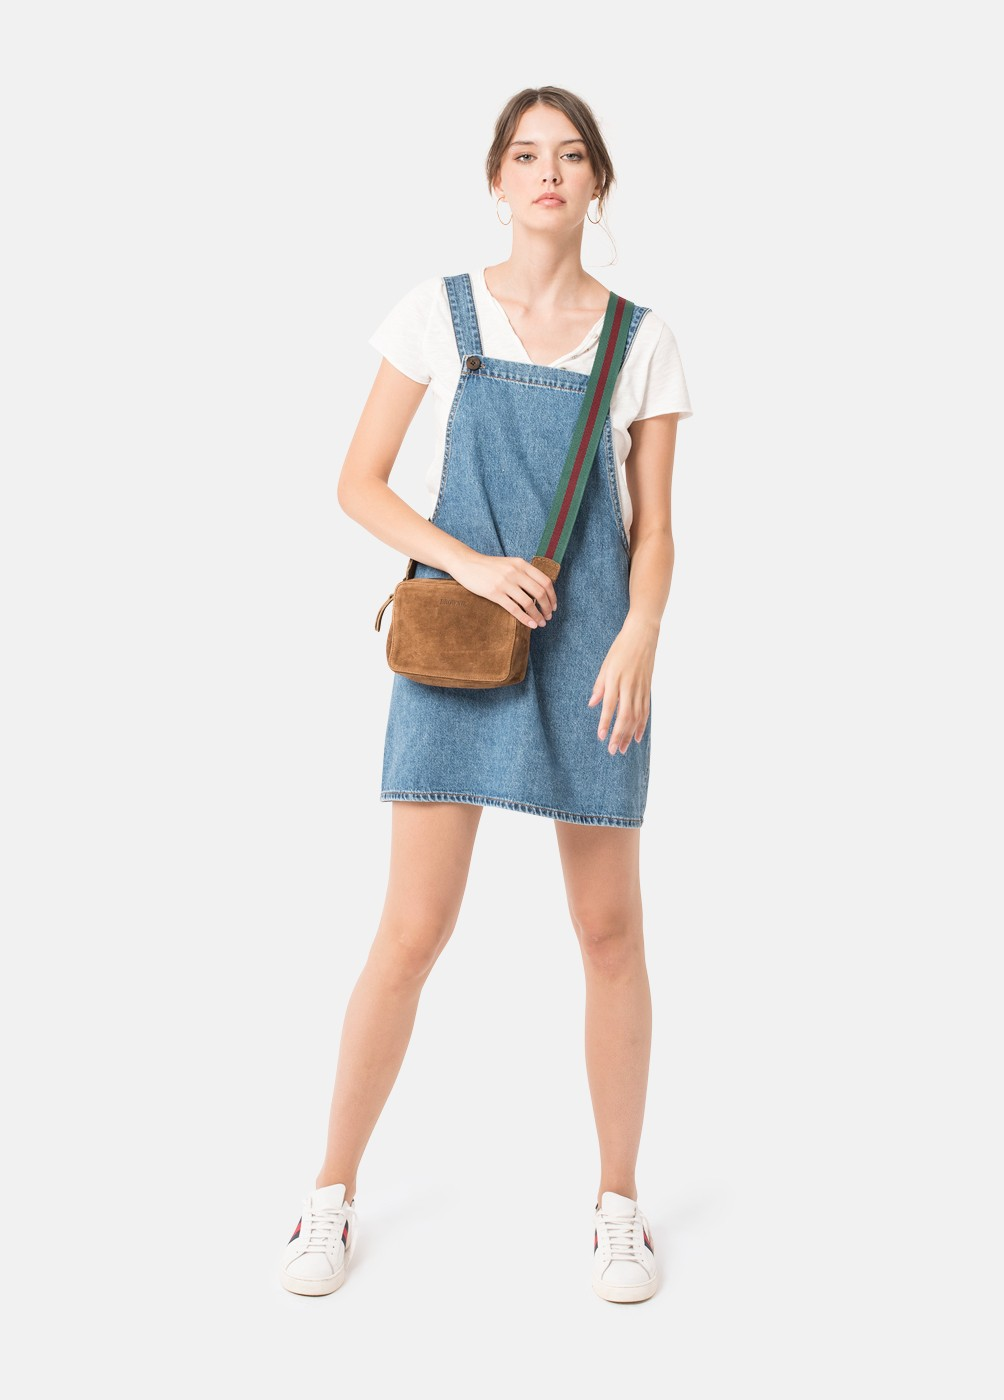 PEARL DENIM DUNGAREE SKIRT